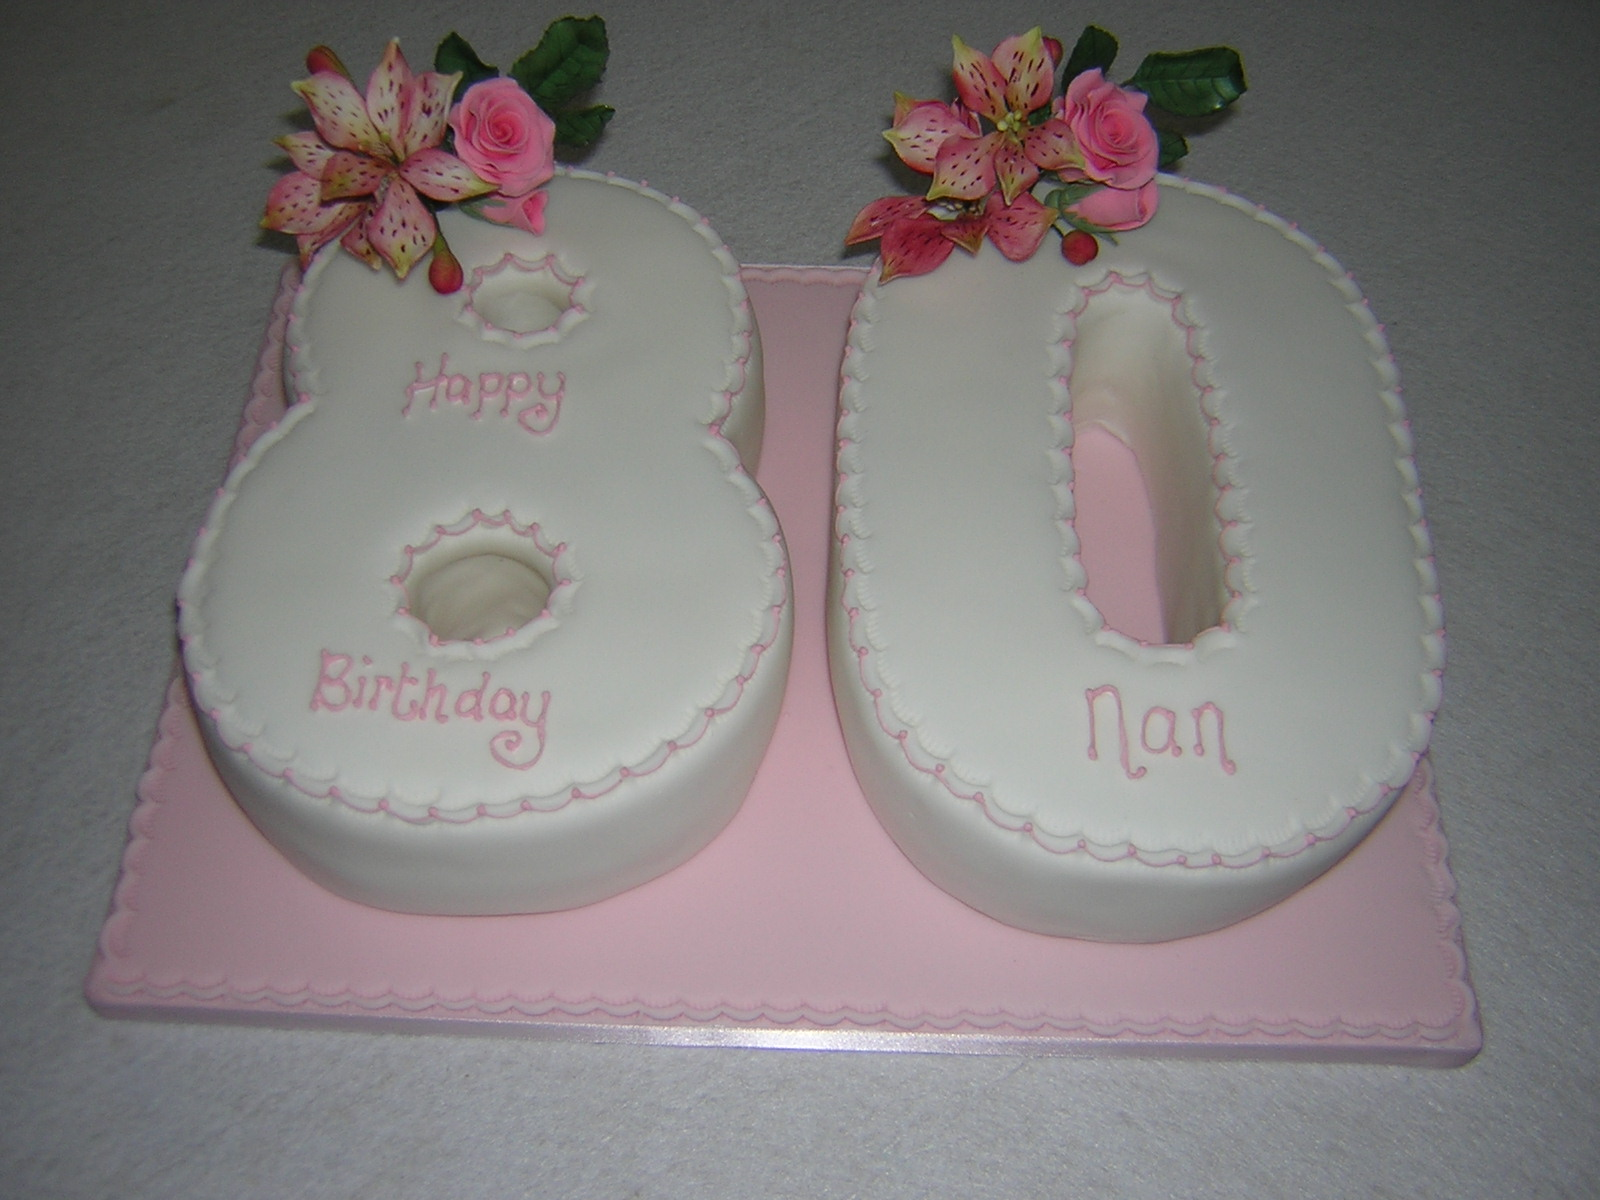 12 Year Old Birthday Cakes Images